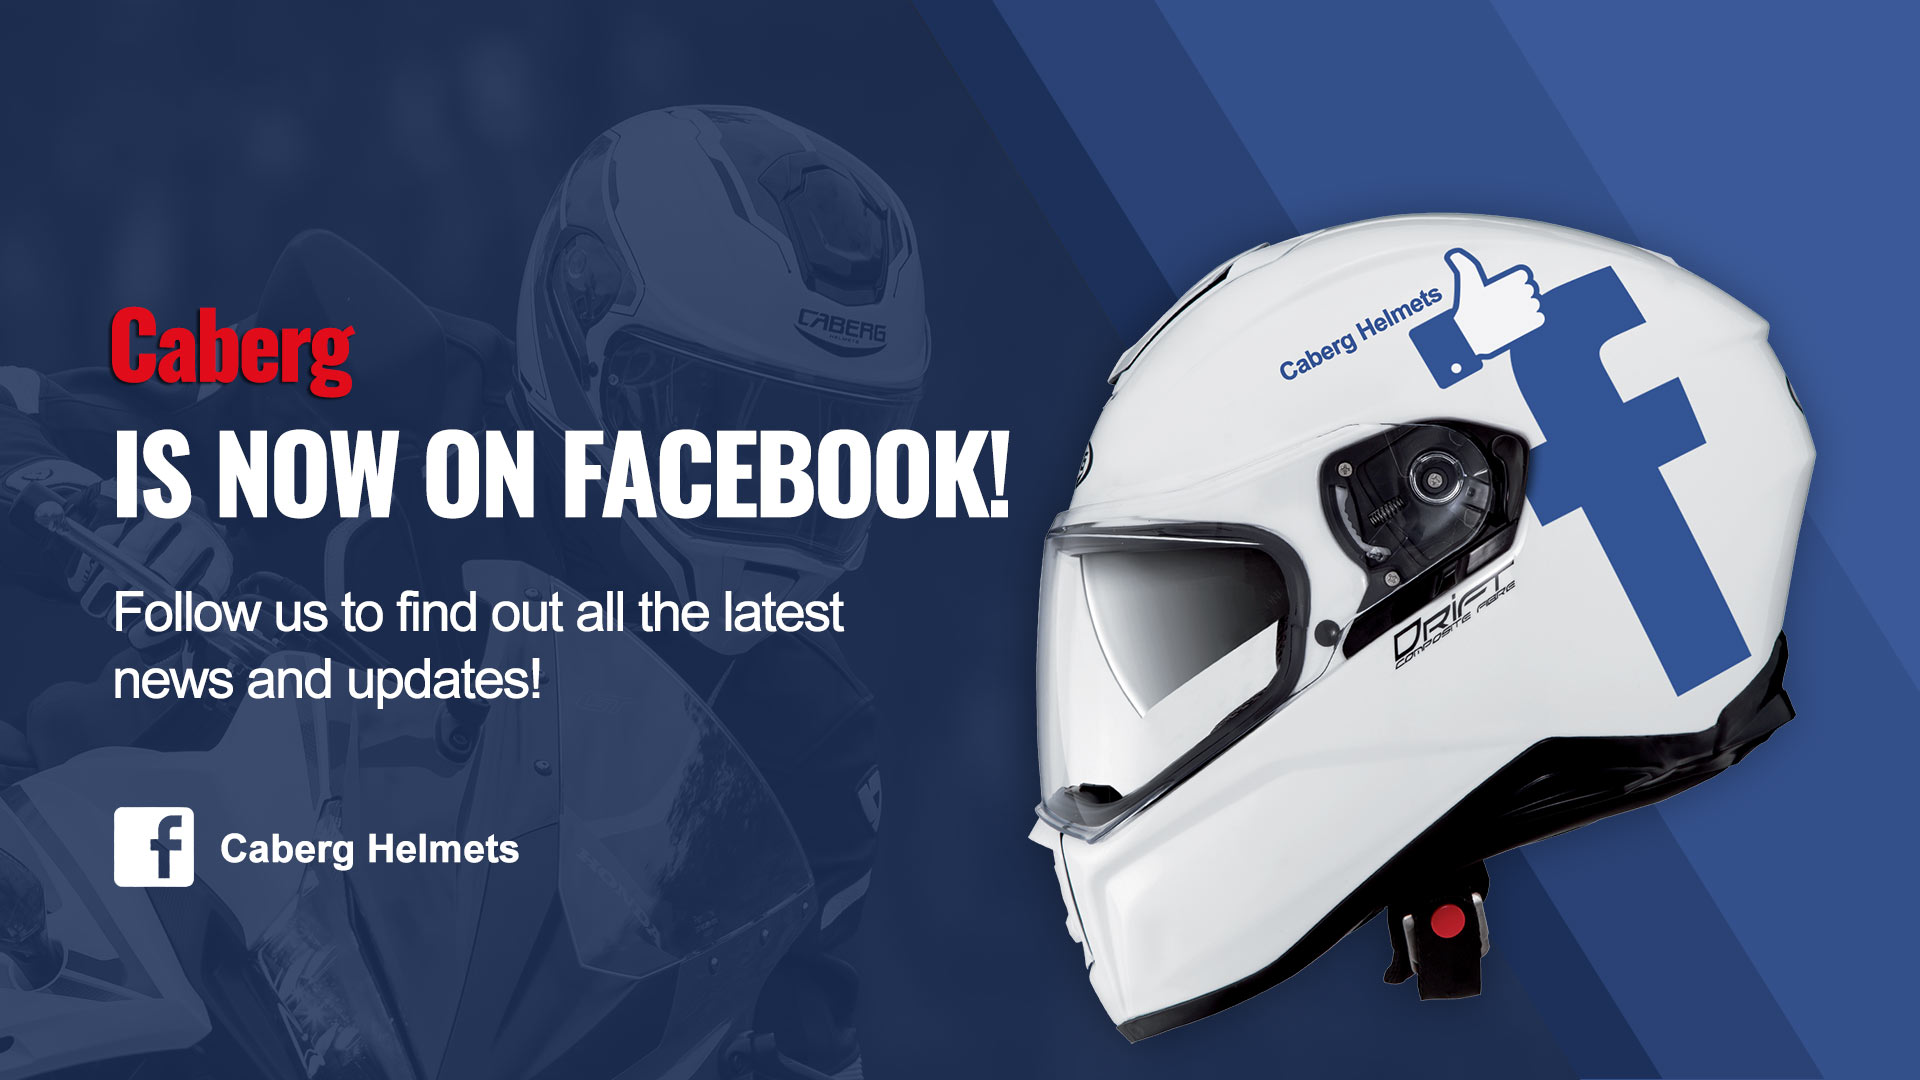 Follow Caberg on Facebook